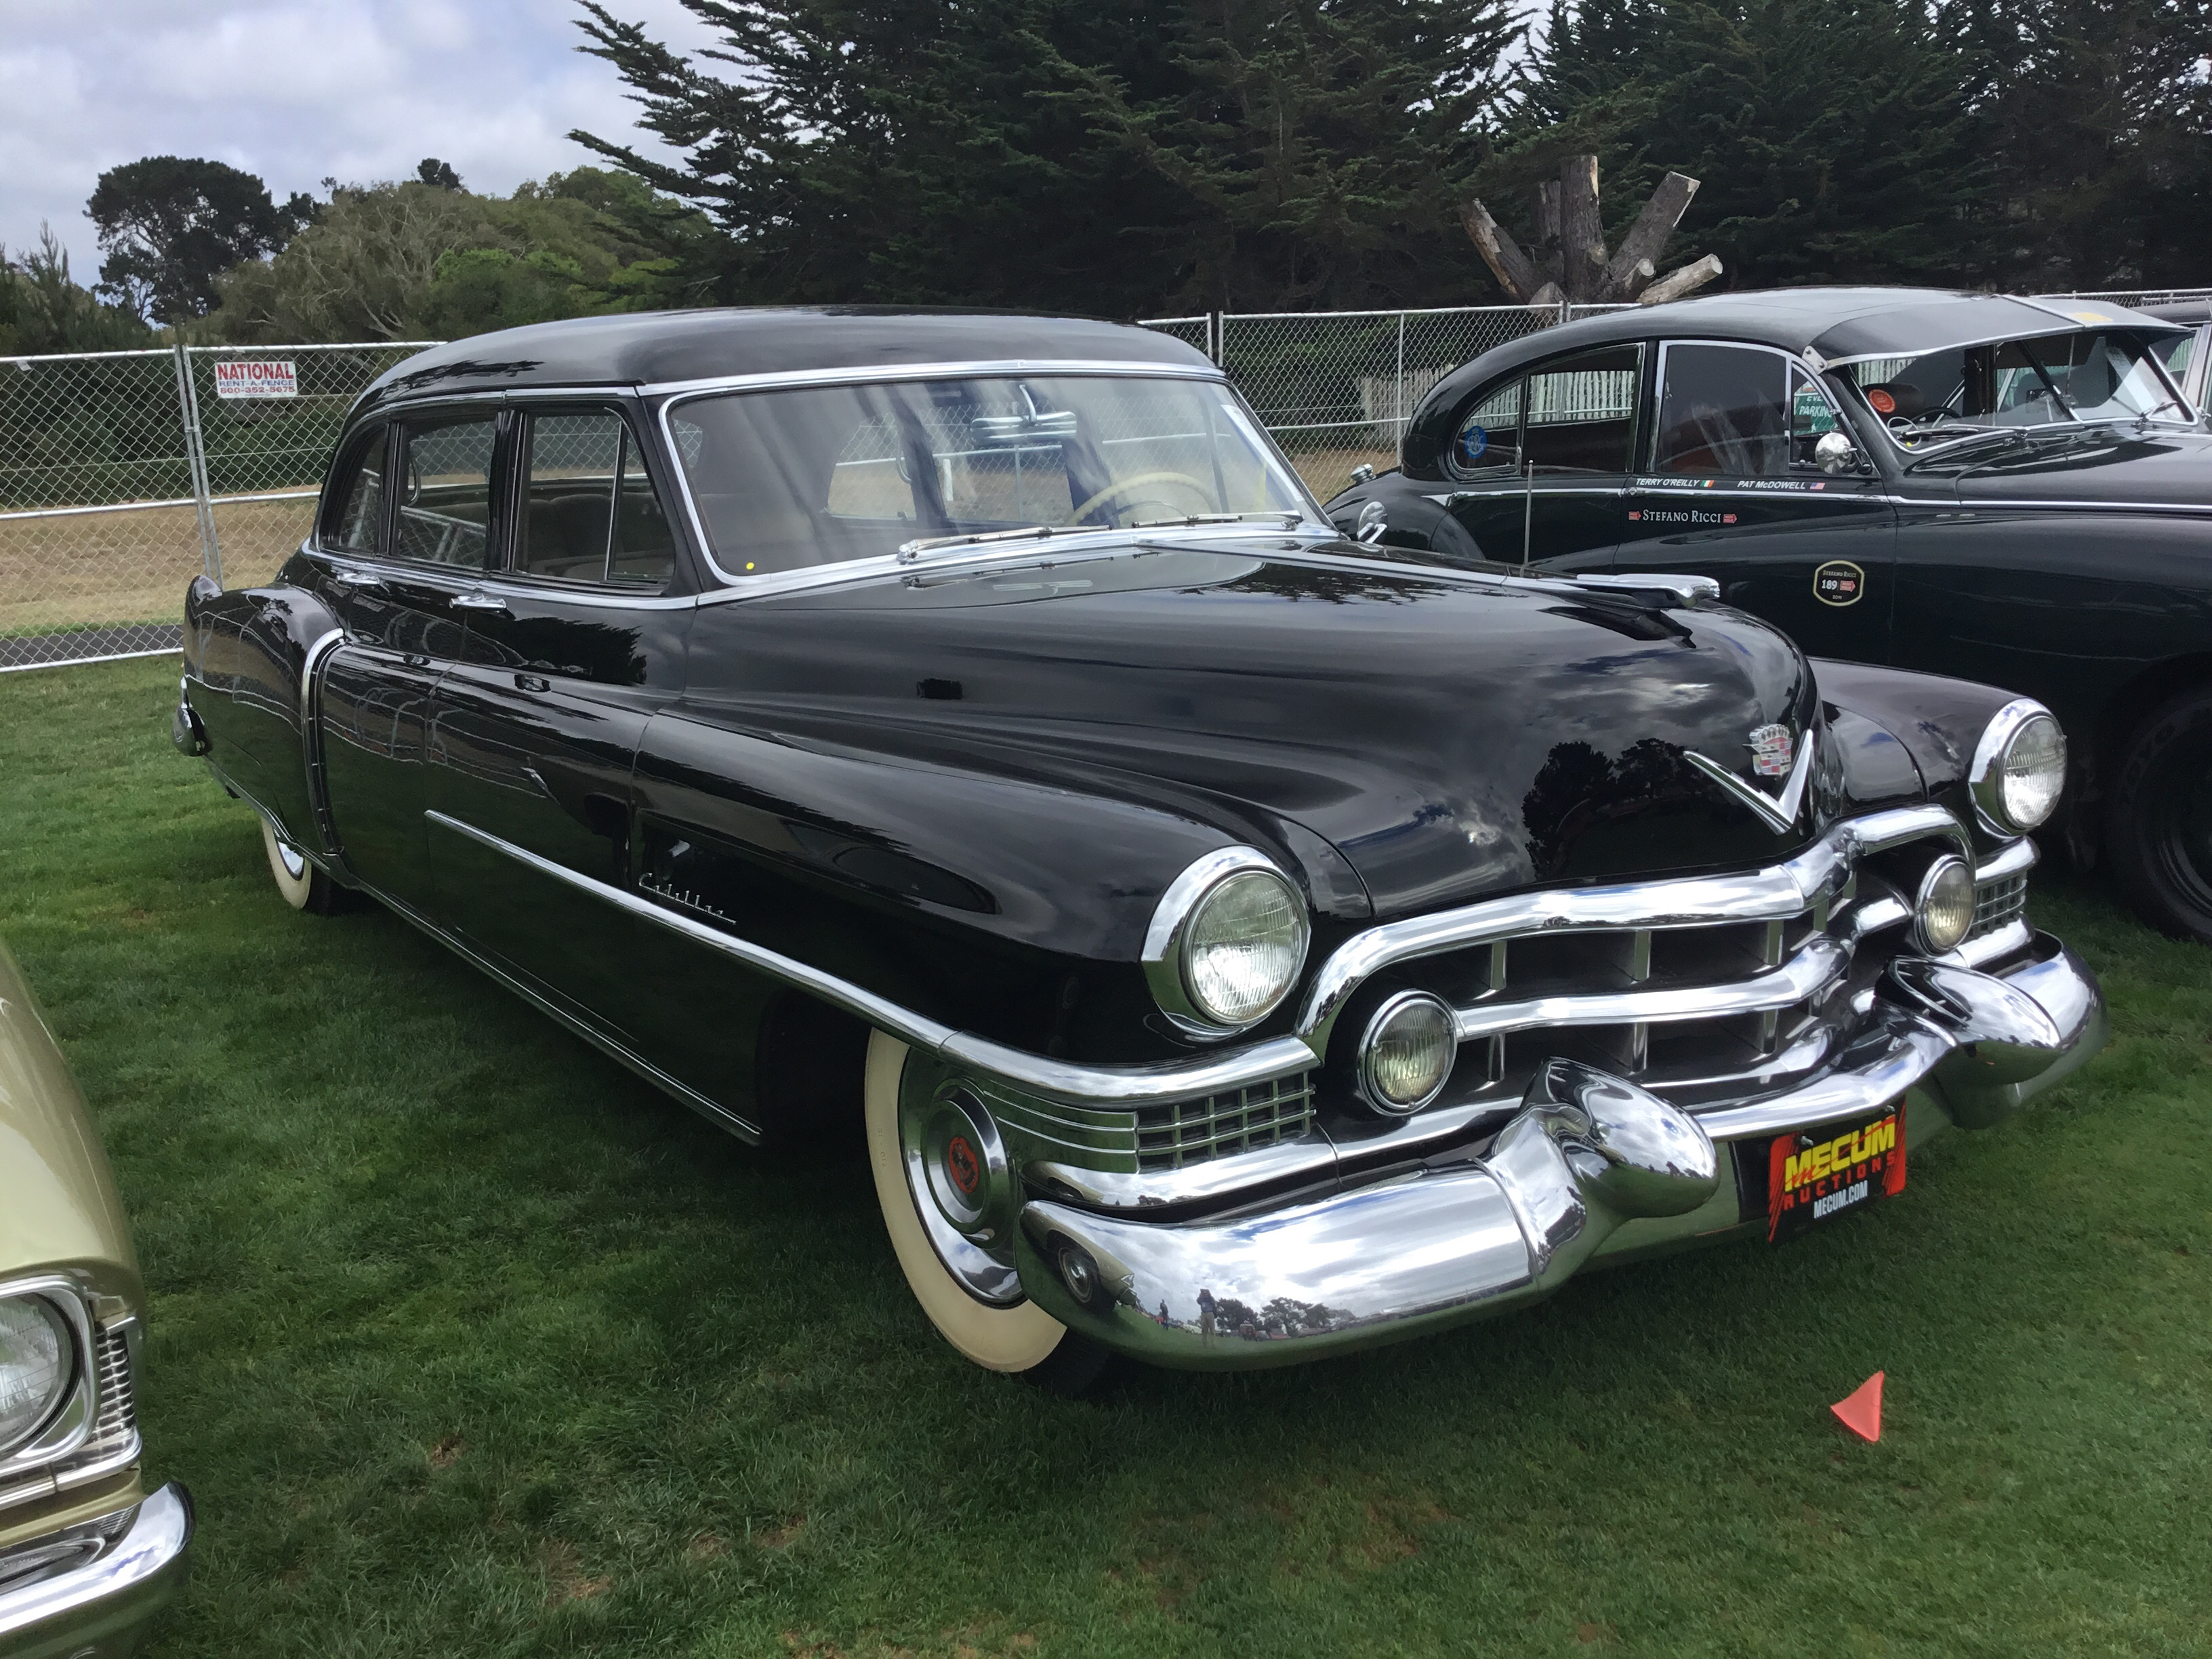 1950 Cadillac Fleetwood Series 75 Values | Hagerty Valuation Tool®